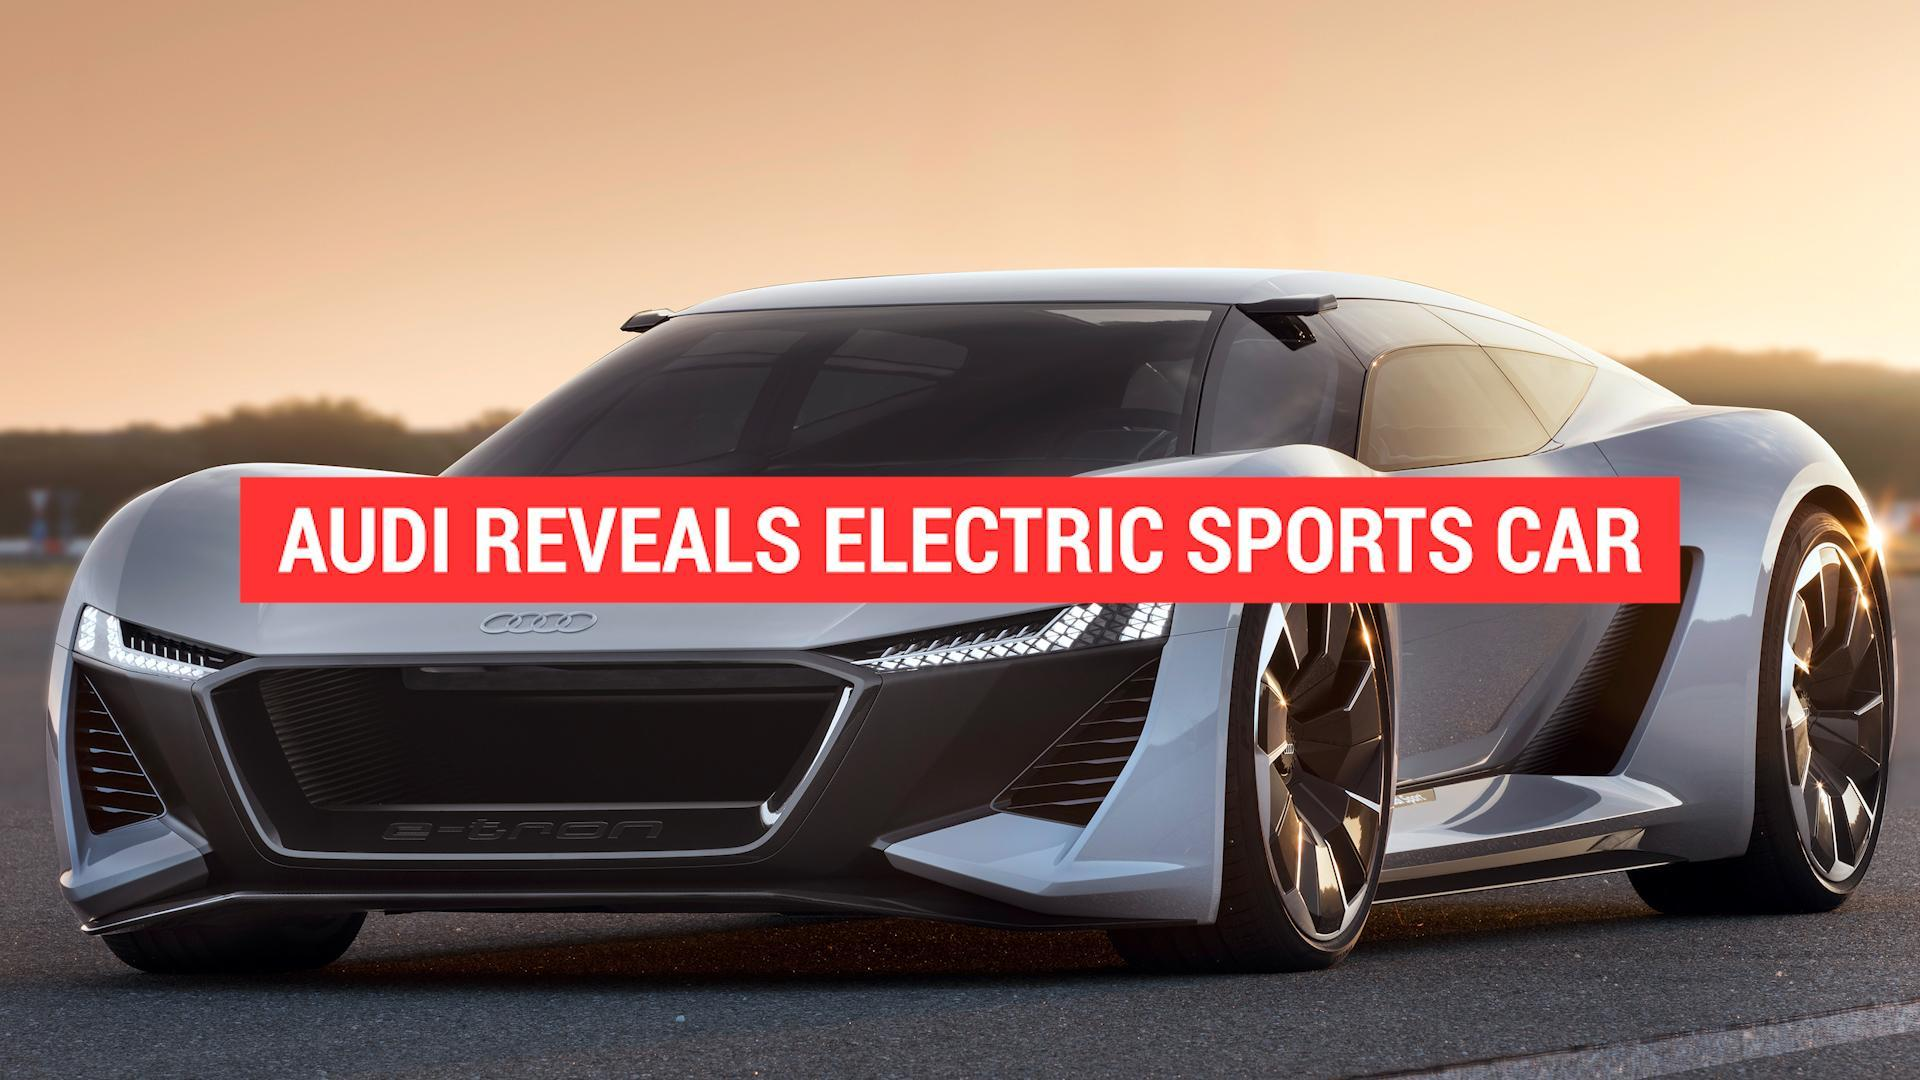 2020 Audi E Tron Gt Will Accommodate 350 Kw Fast Charging Autoblog